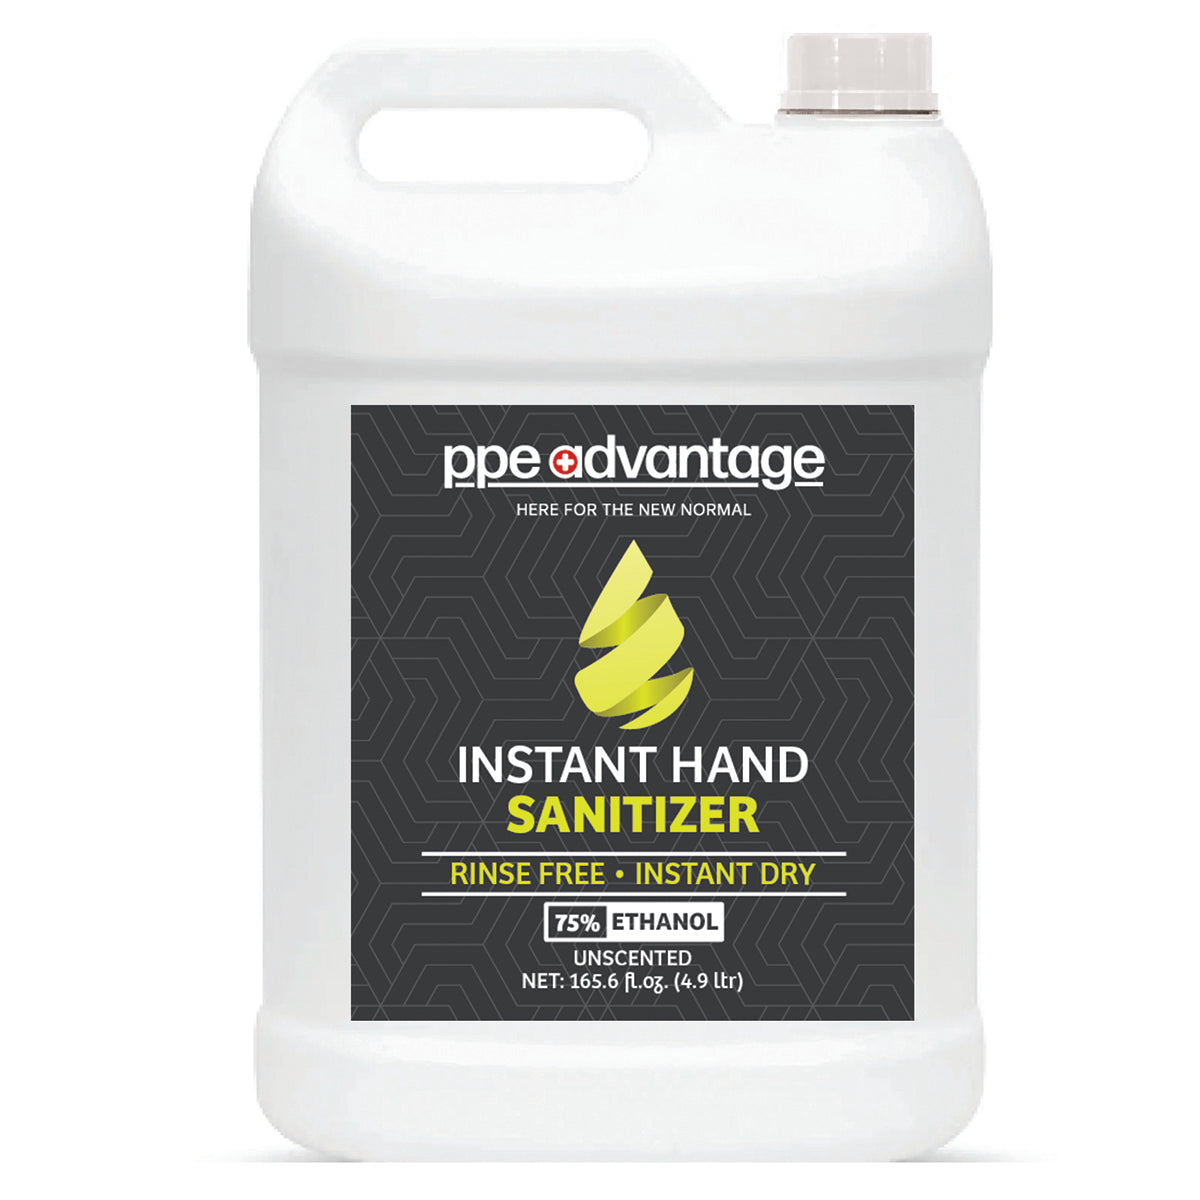 3027 PPE Advantage Instant Hand Sanitizer (4.9ltr) - PPEA Branded Label | PPE Advantate powered by dS Product Hunters